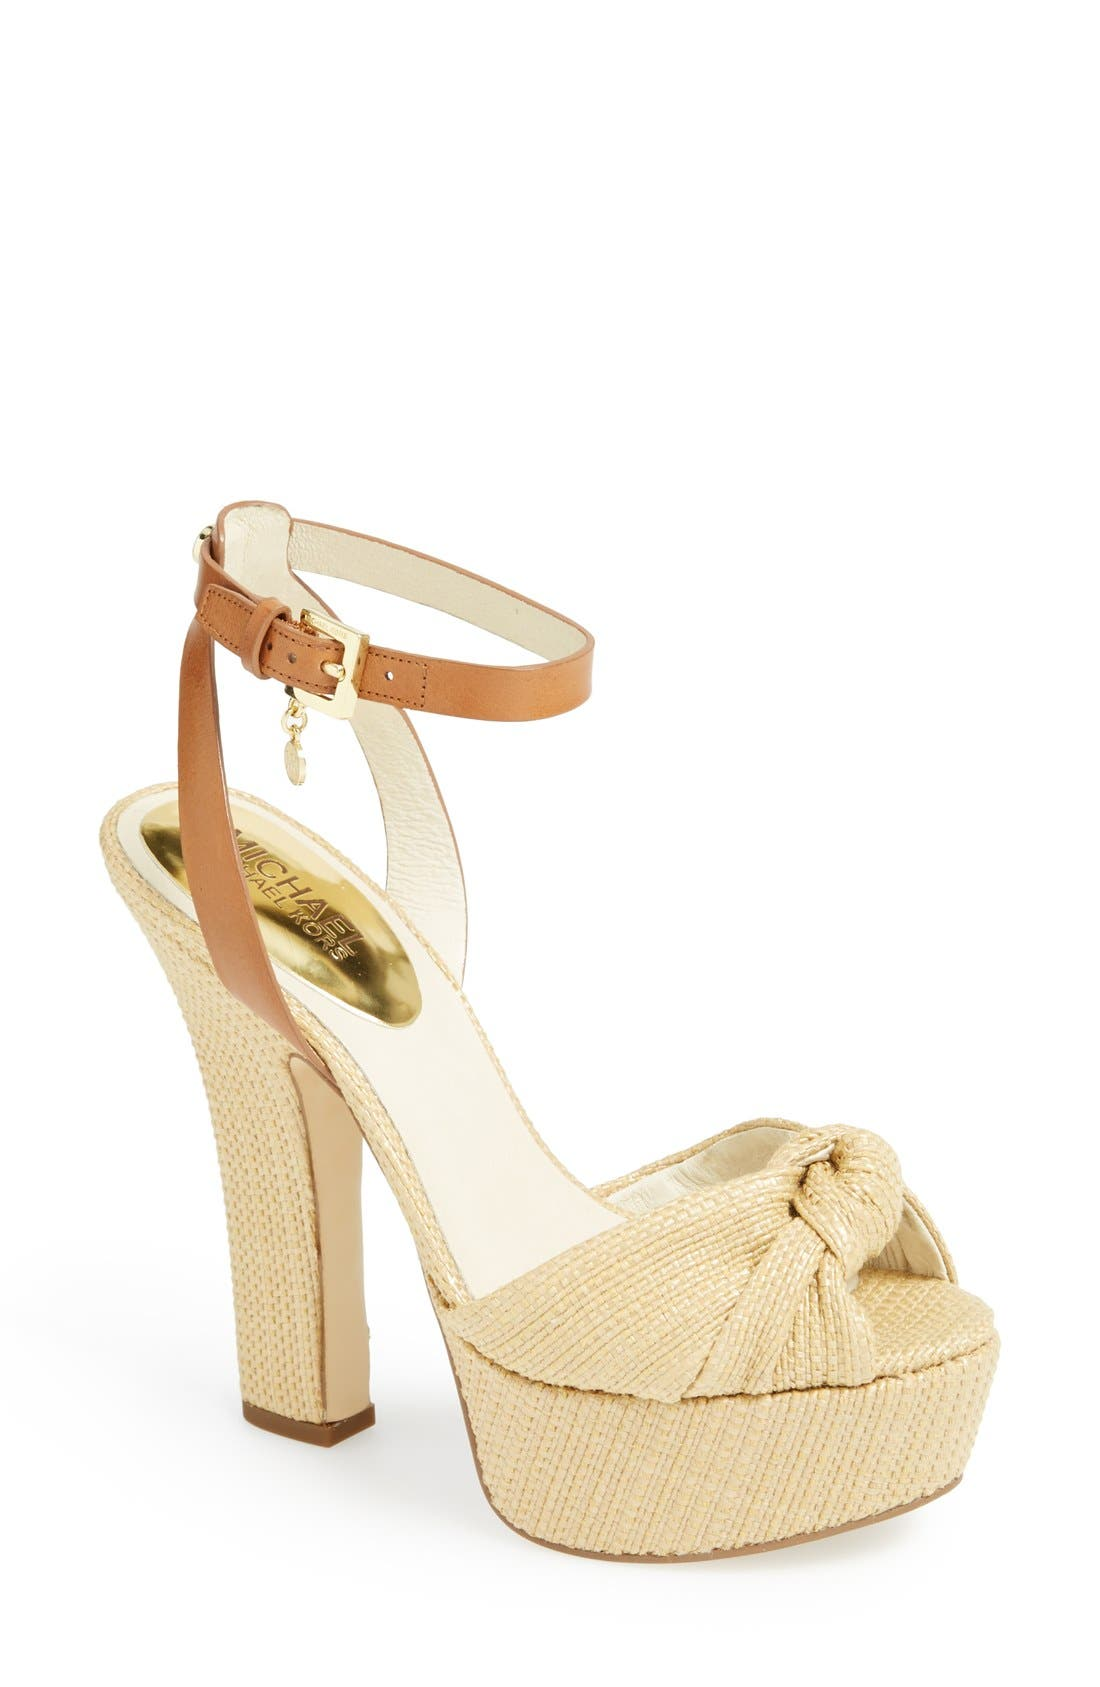 Alternate Image 1 Selected - MICHAEL Michael Kors 'Benji' Platform Sandal